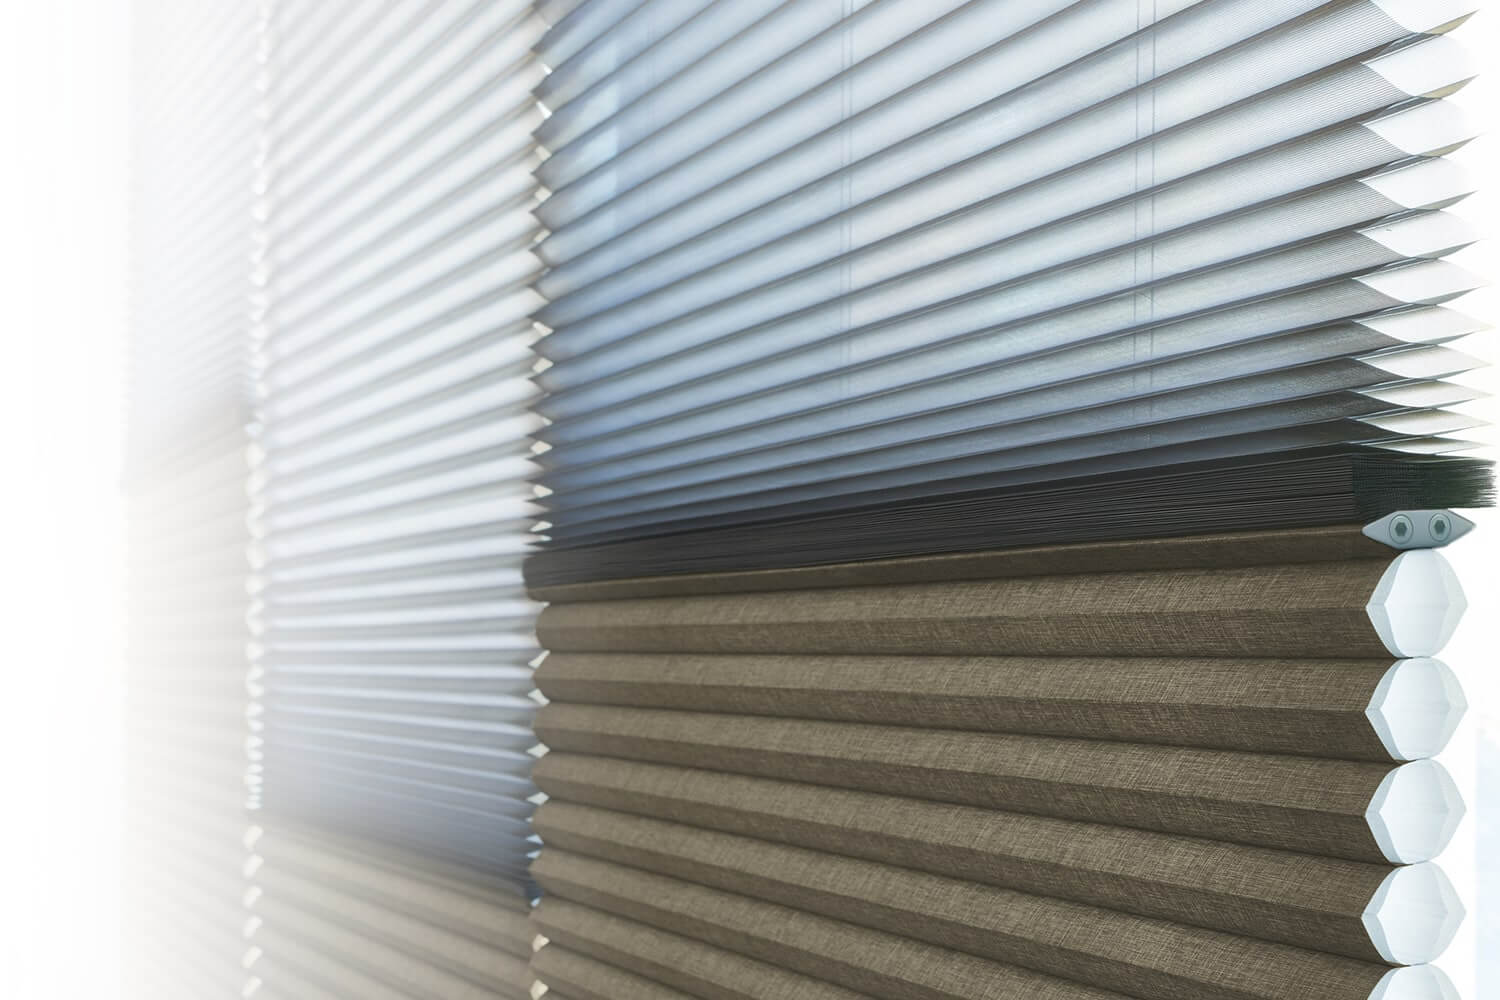 Window treatments are a great way to increase the energy efficiency and style of your home while helping you save money on your monthly utility bills.